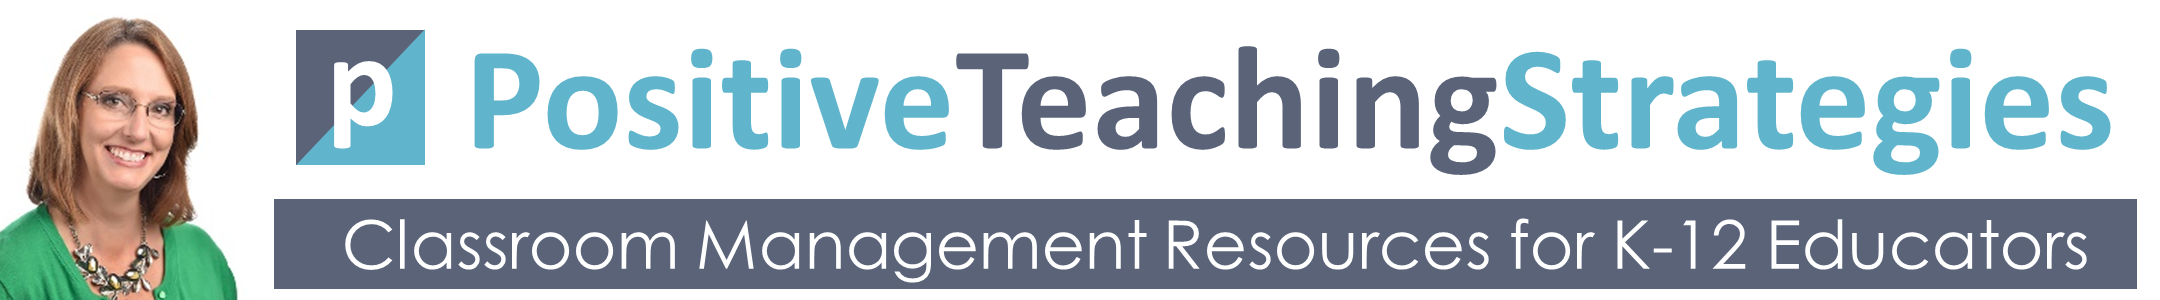 Positive Teaching Strategies - Classroom Management Resources for K-12 Educators